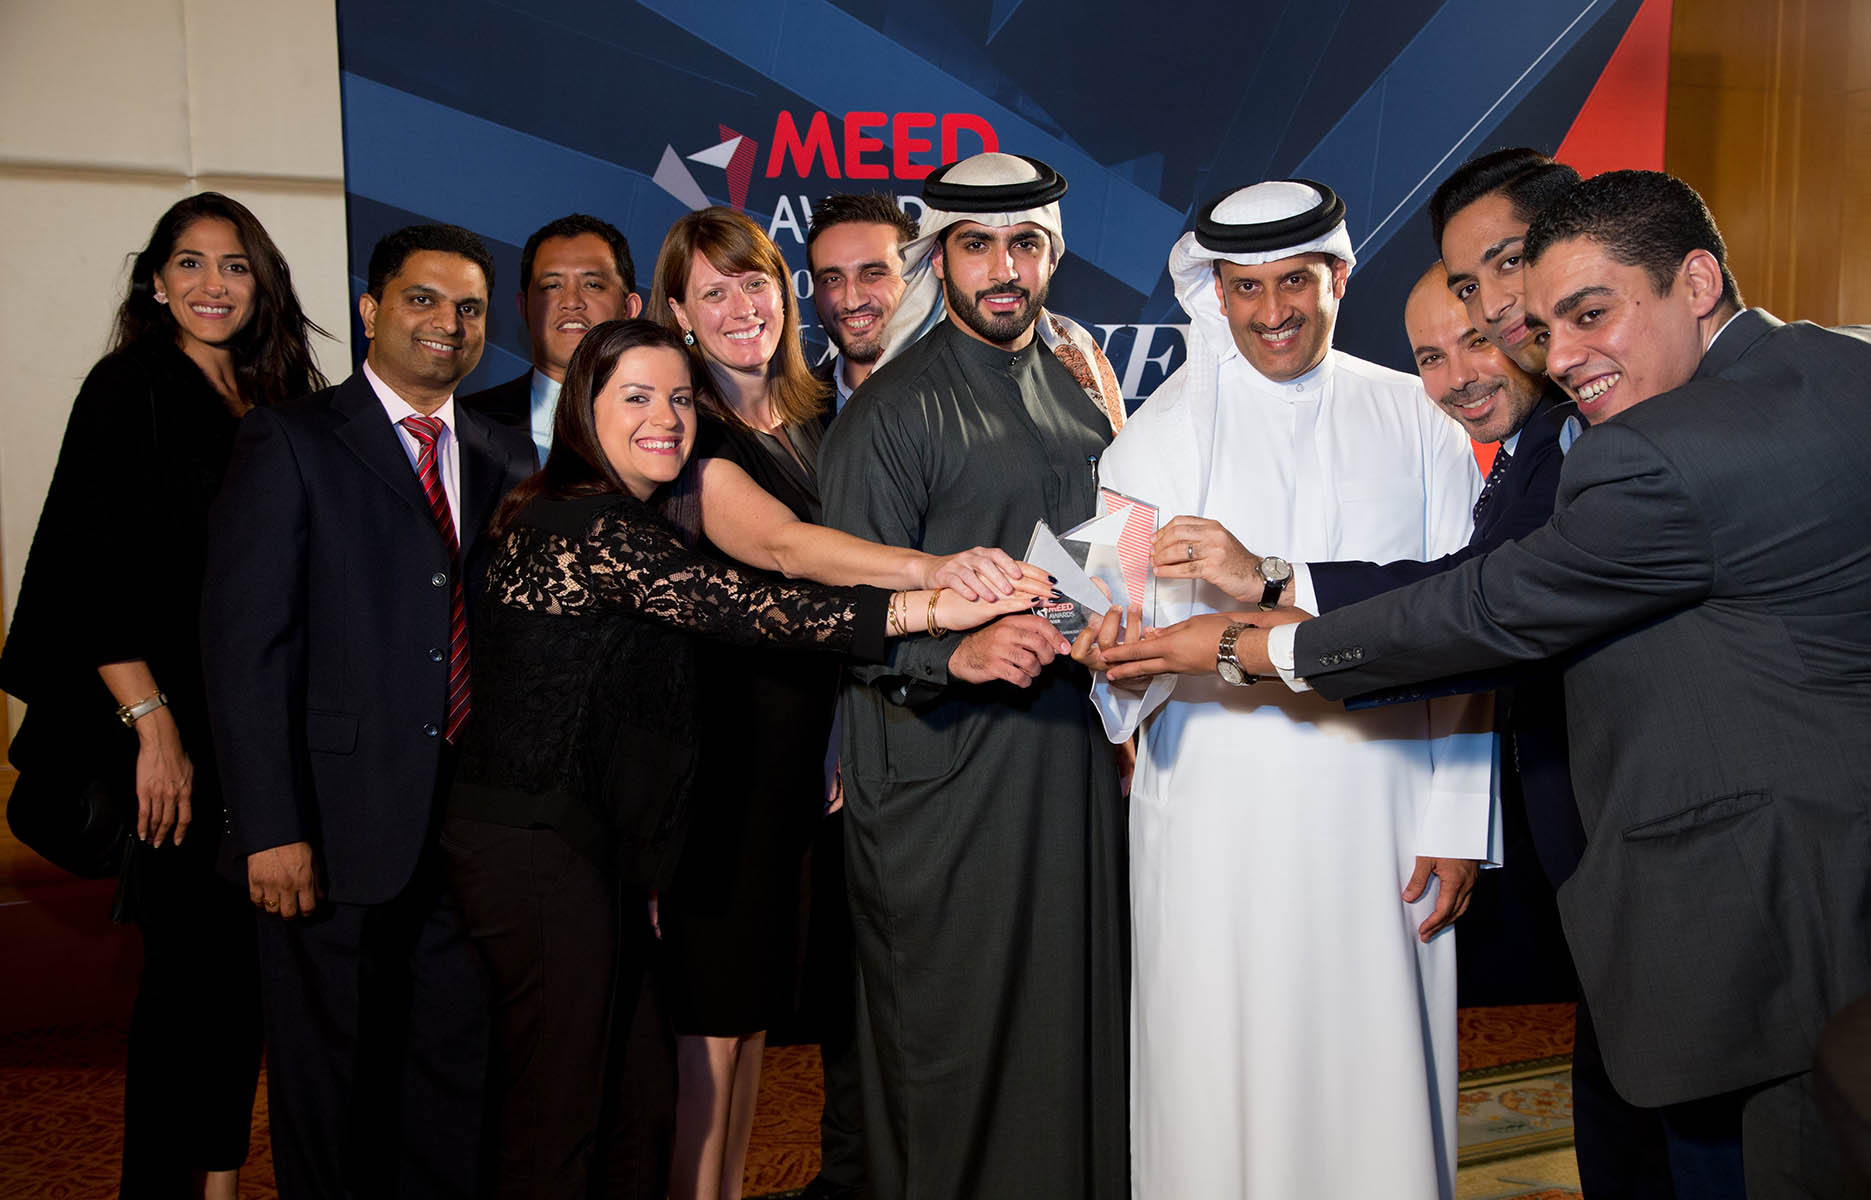 Contractor of the Year Award 2018 by MEED